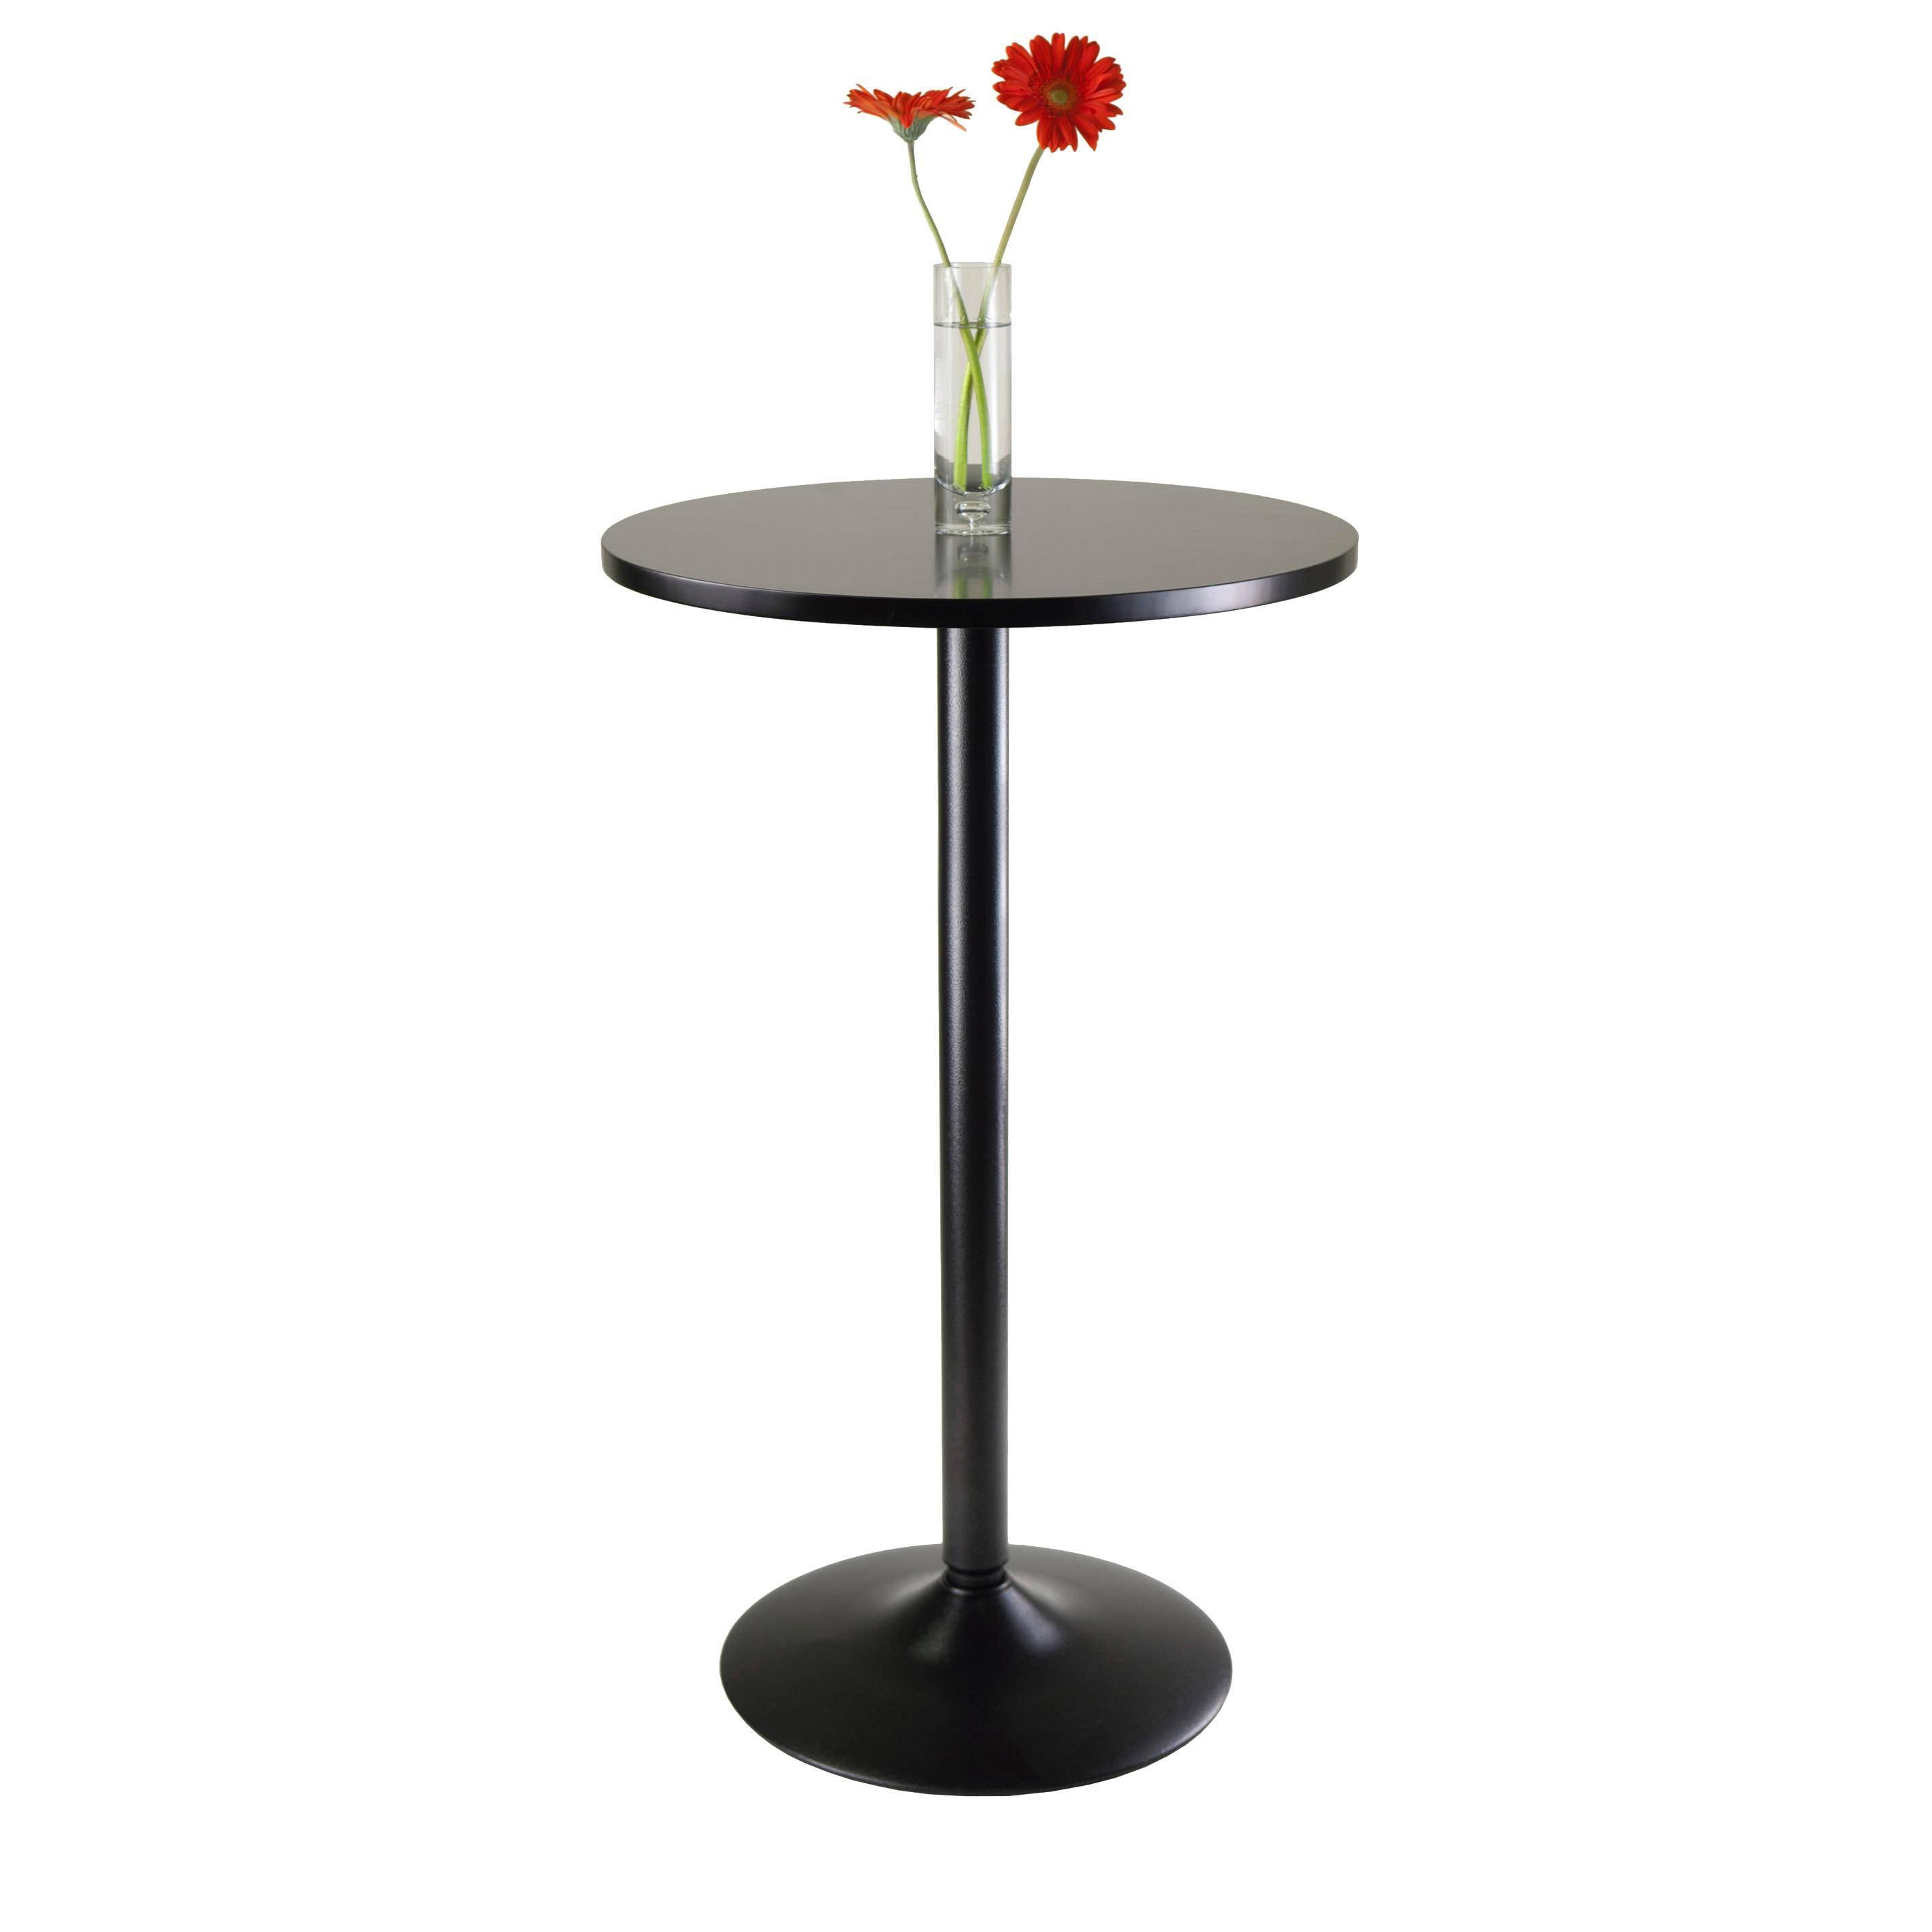 silver bar inch height table round base pin pedestal with